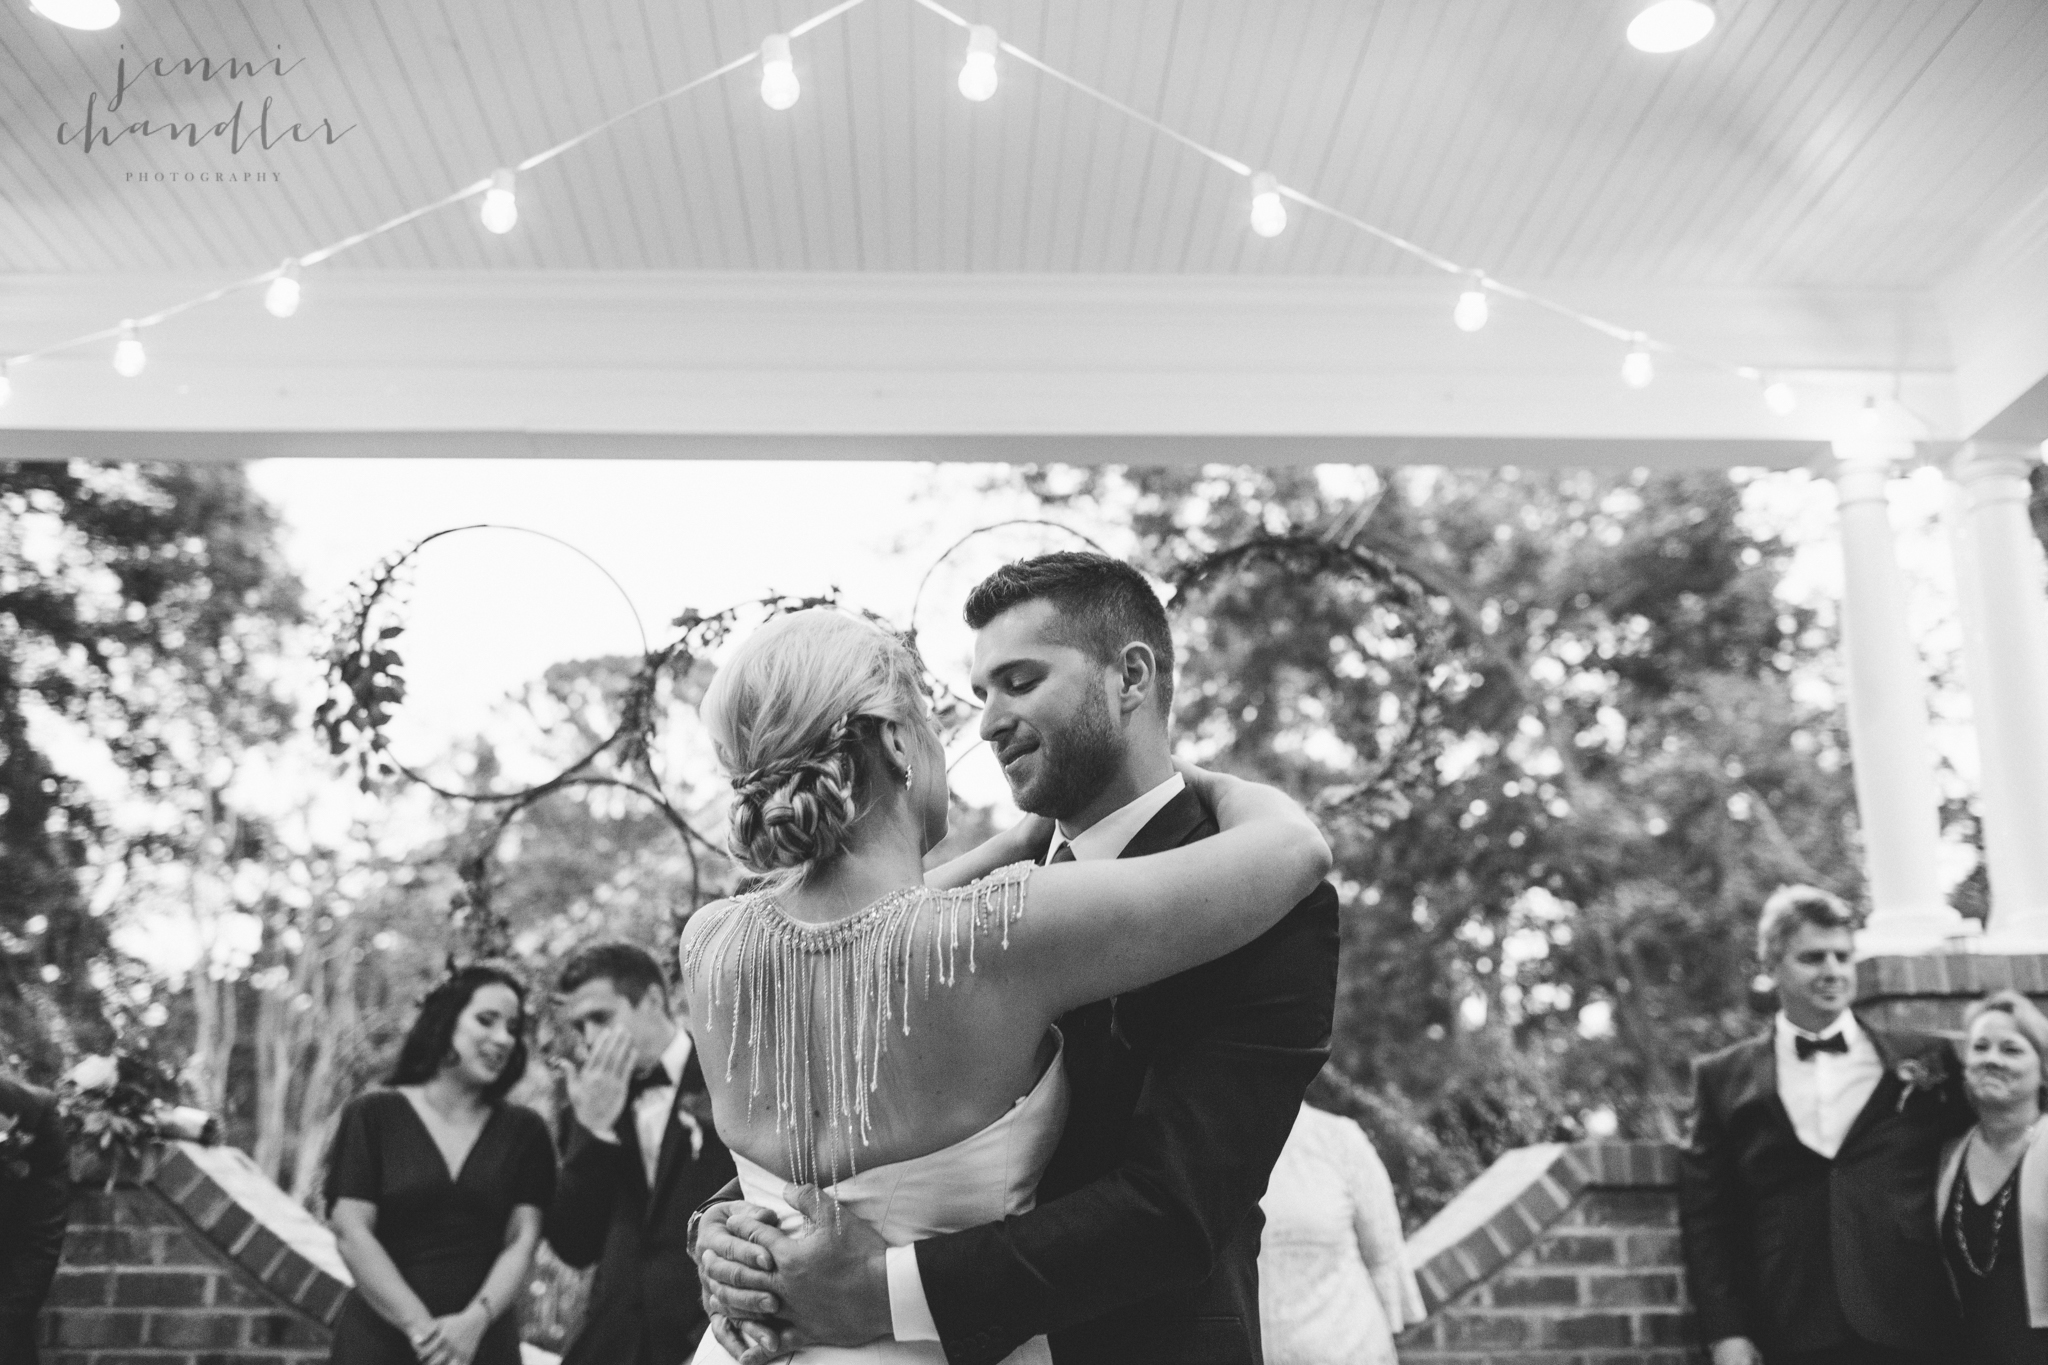 RitchieHill_Wedding_JenniChandlerPhotography_BrevardNC-55.jpg